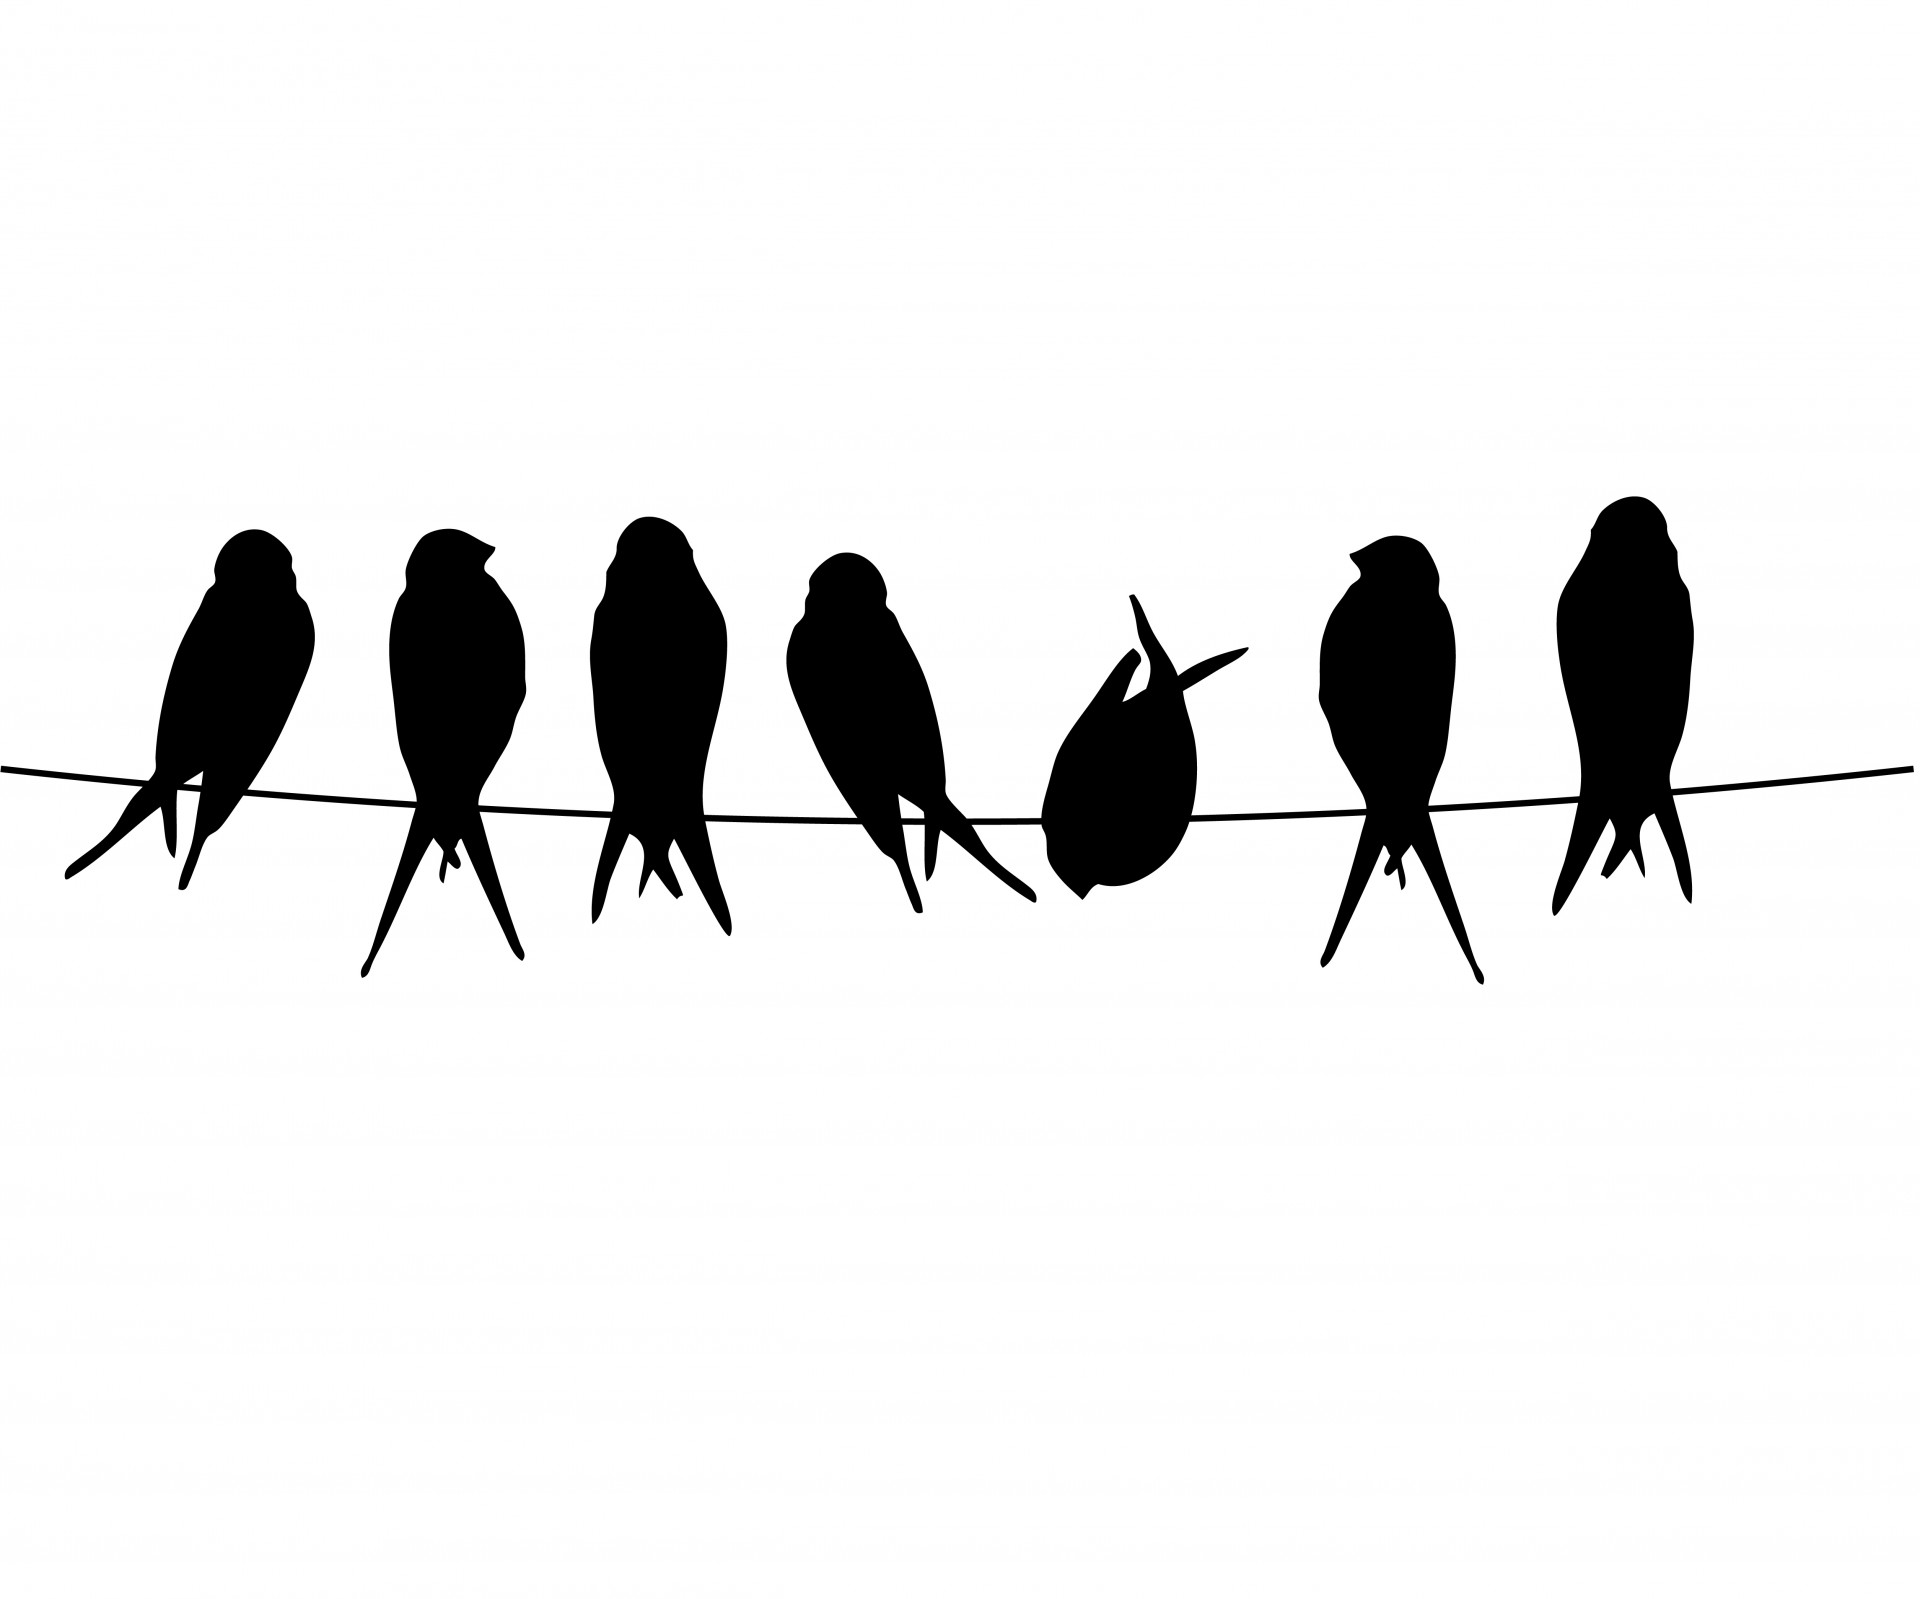 Birds On A Wire Free Stock Photo - Public Domain Pictures